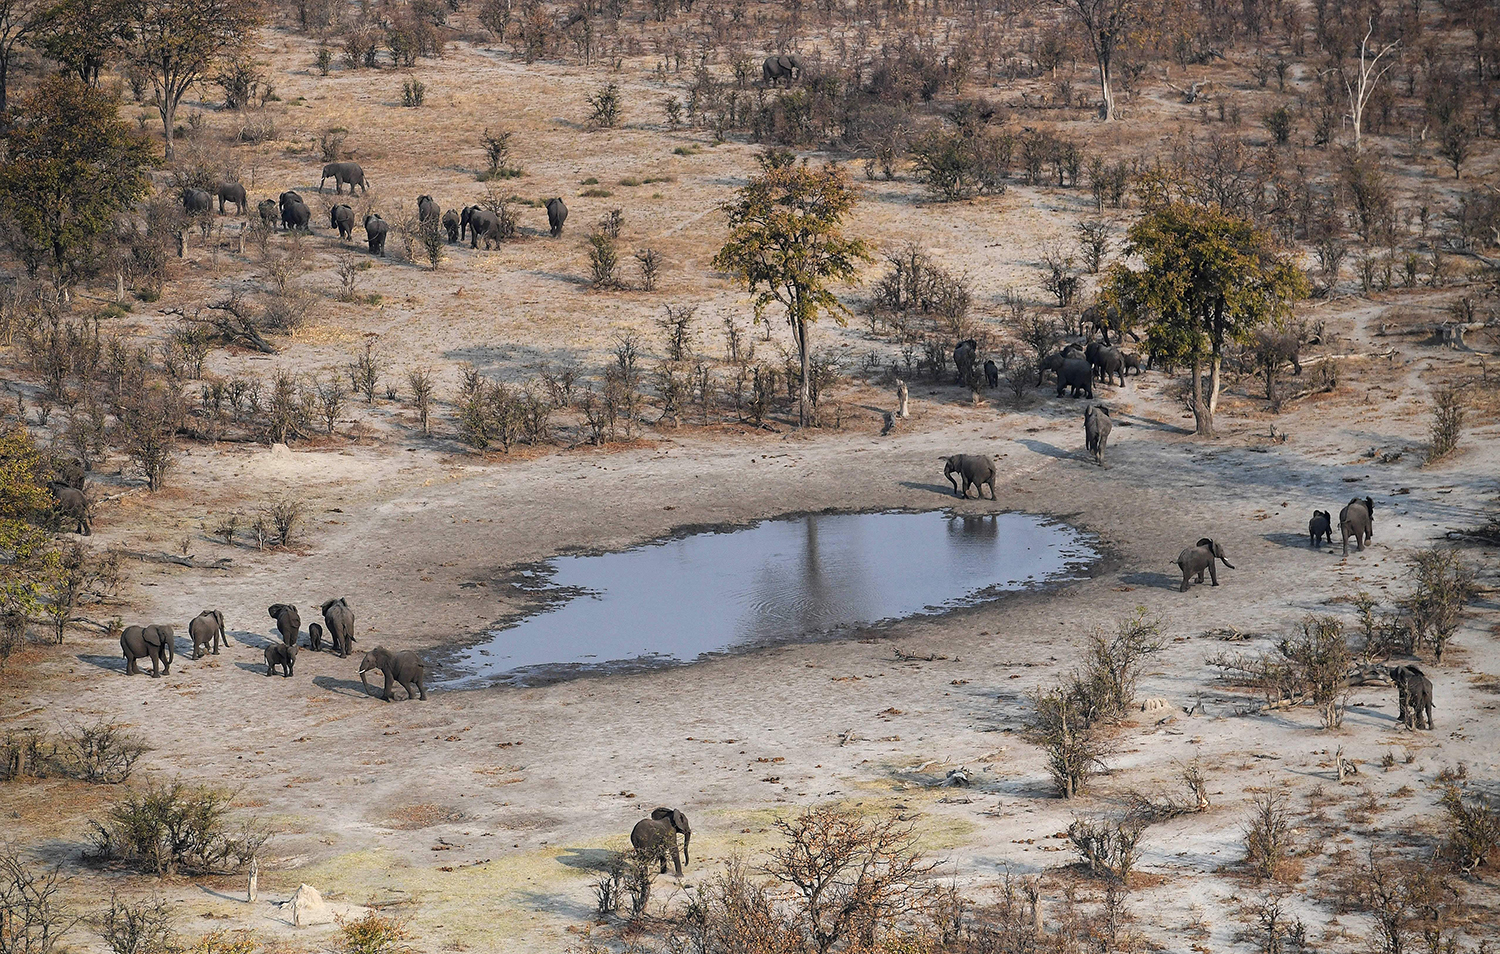 Elephants roam in the plains of the Chobe district, Botswana, on Sept. 19, 2018. Elephants Without Borders claims it discovered at least 87 elephant carcasses suggesting a spike in killings.